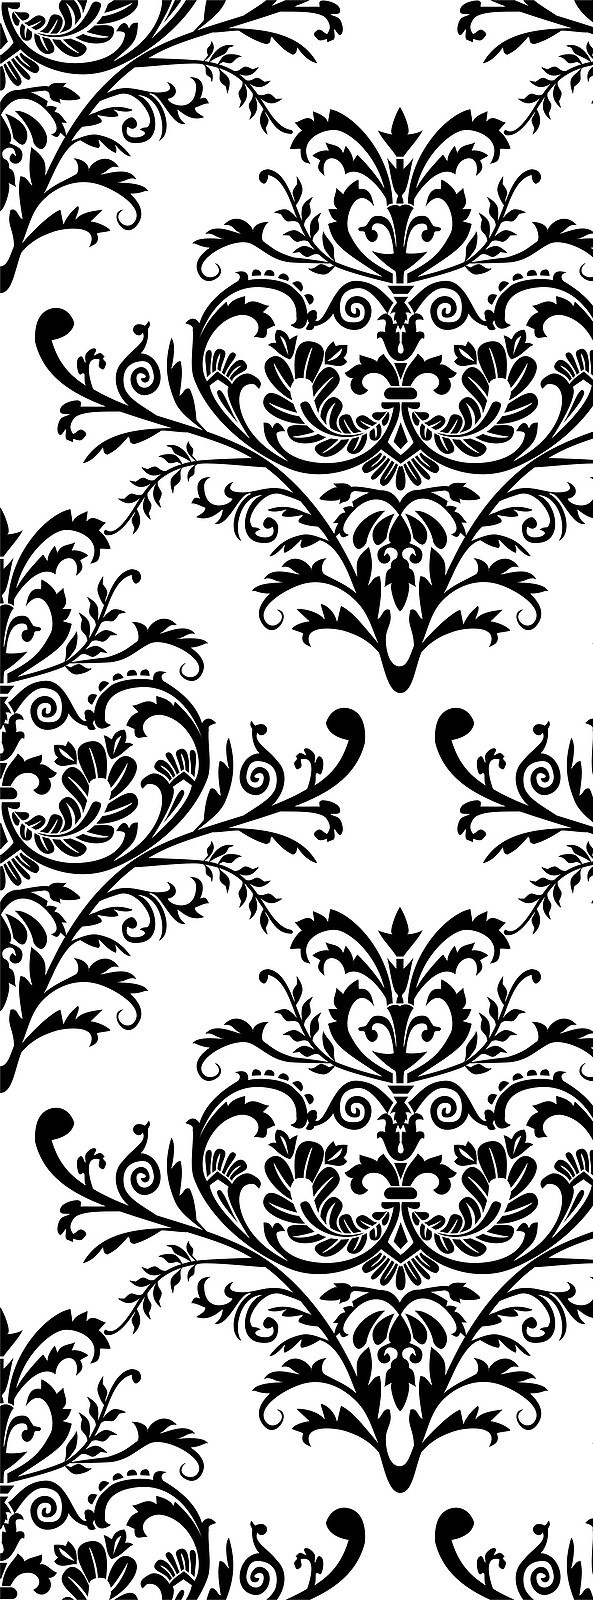 Baroque pattern black and white http://htctokok-infinity.hu , http://galaxytokok-infinity.hu , http://iphonetokok-infinity.hu